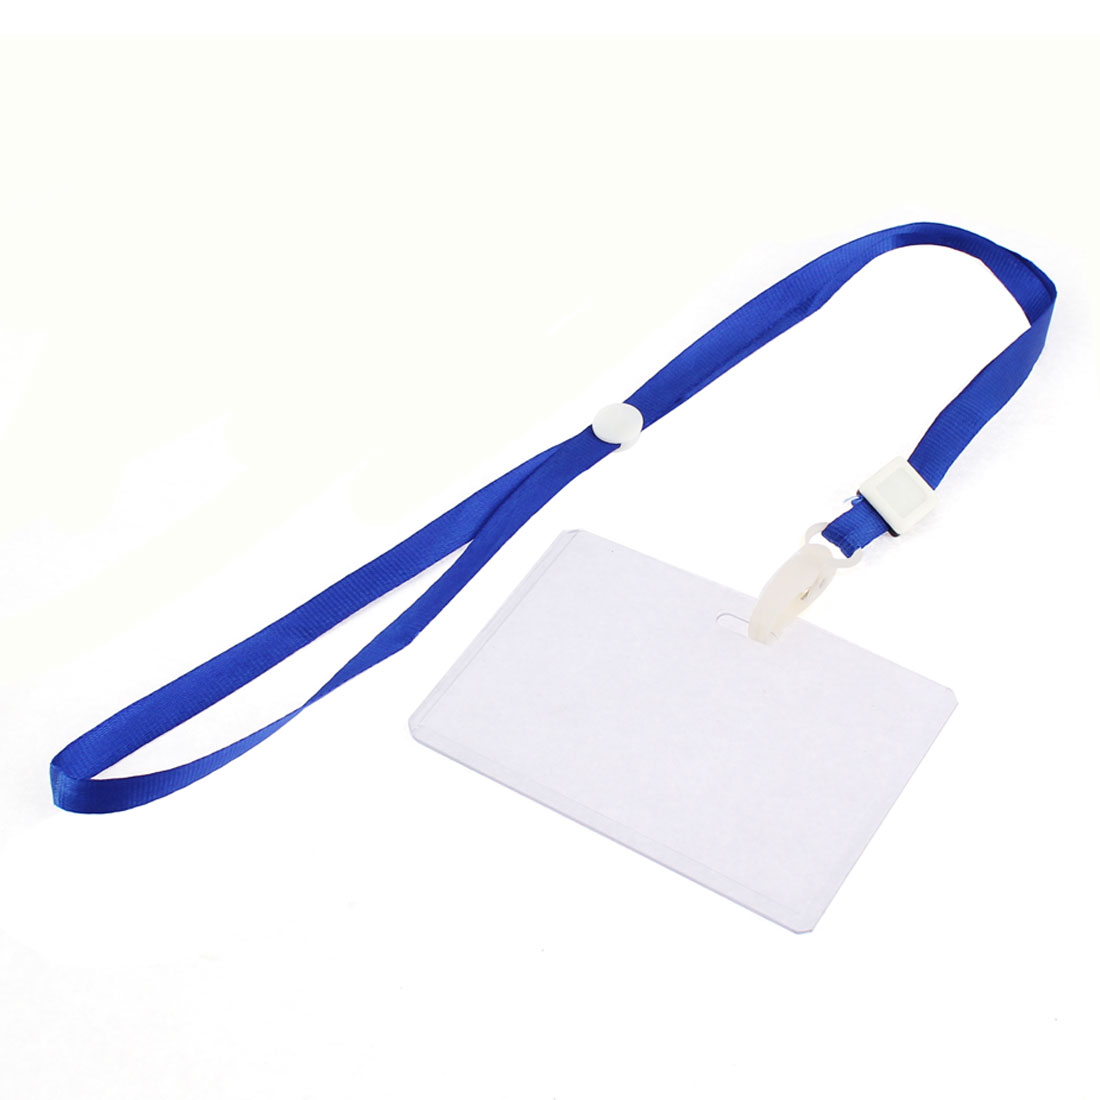 Nylon Lanyard Plastic Business ID Badge Card Holder Strap Ring Case Pocket 2pcs